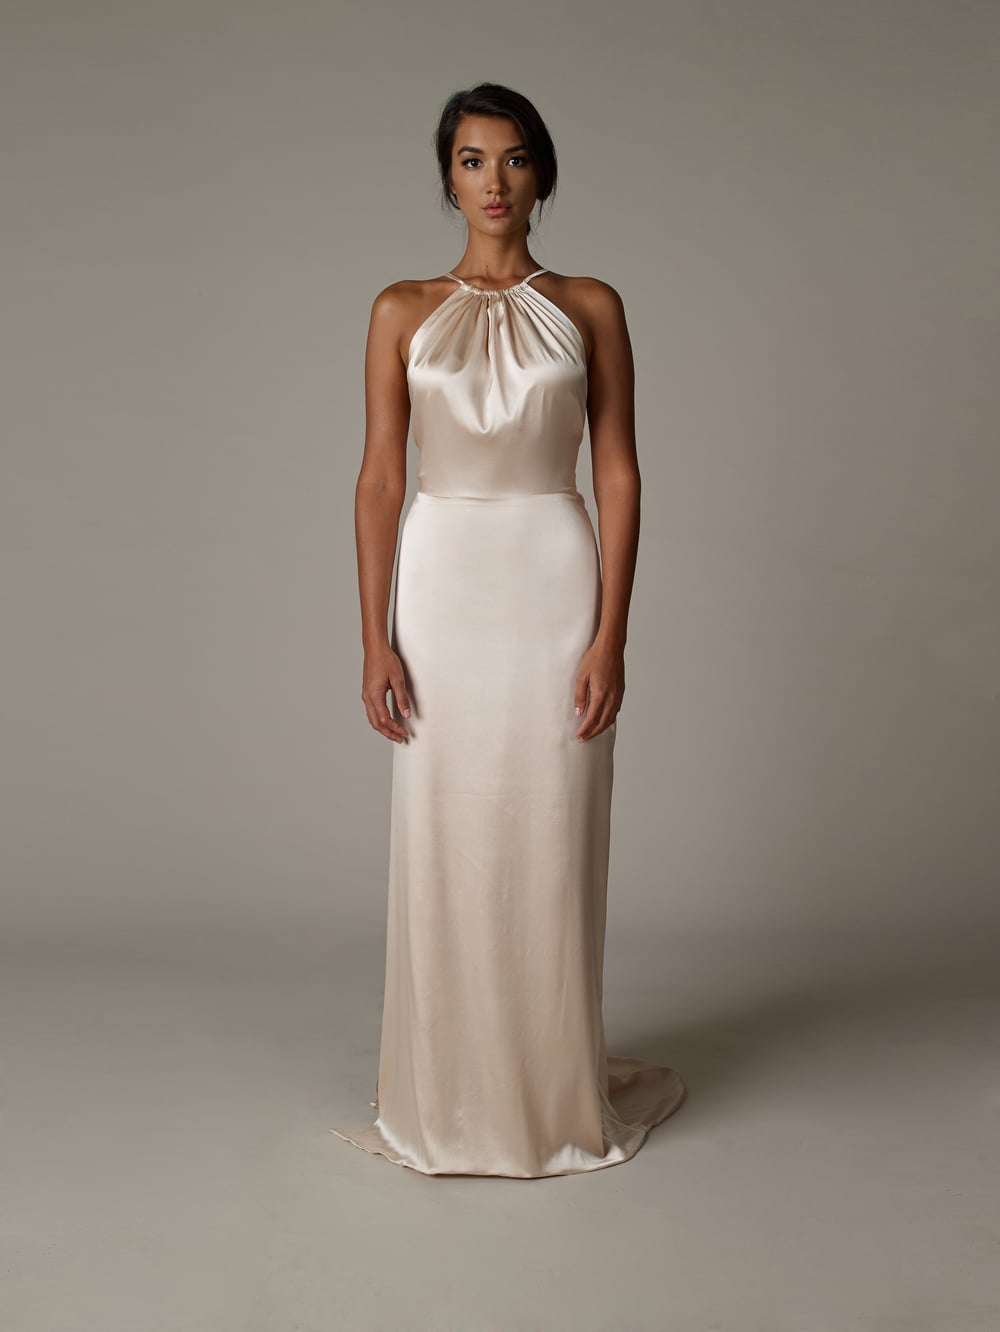 Joelle perry ready to wear wedding dresses hawaii for Ready to wear wedding dresses online